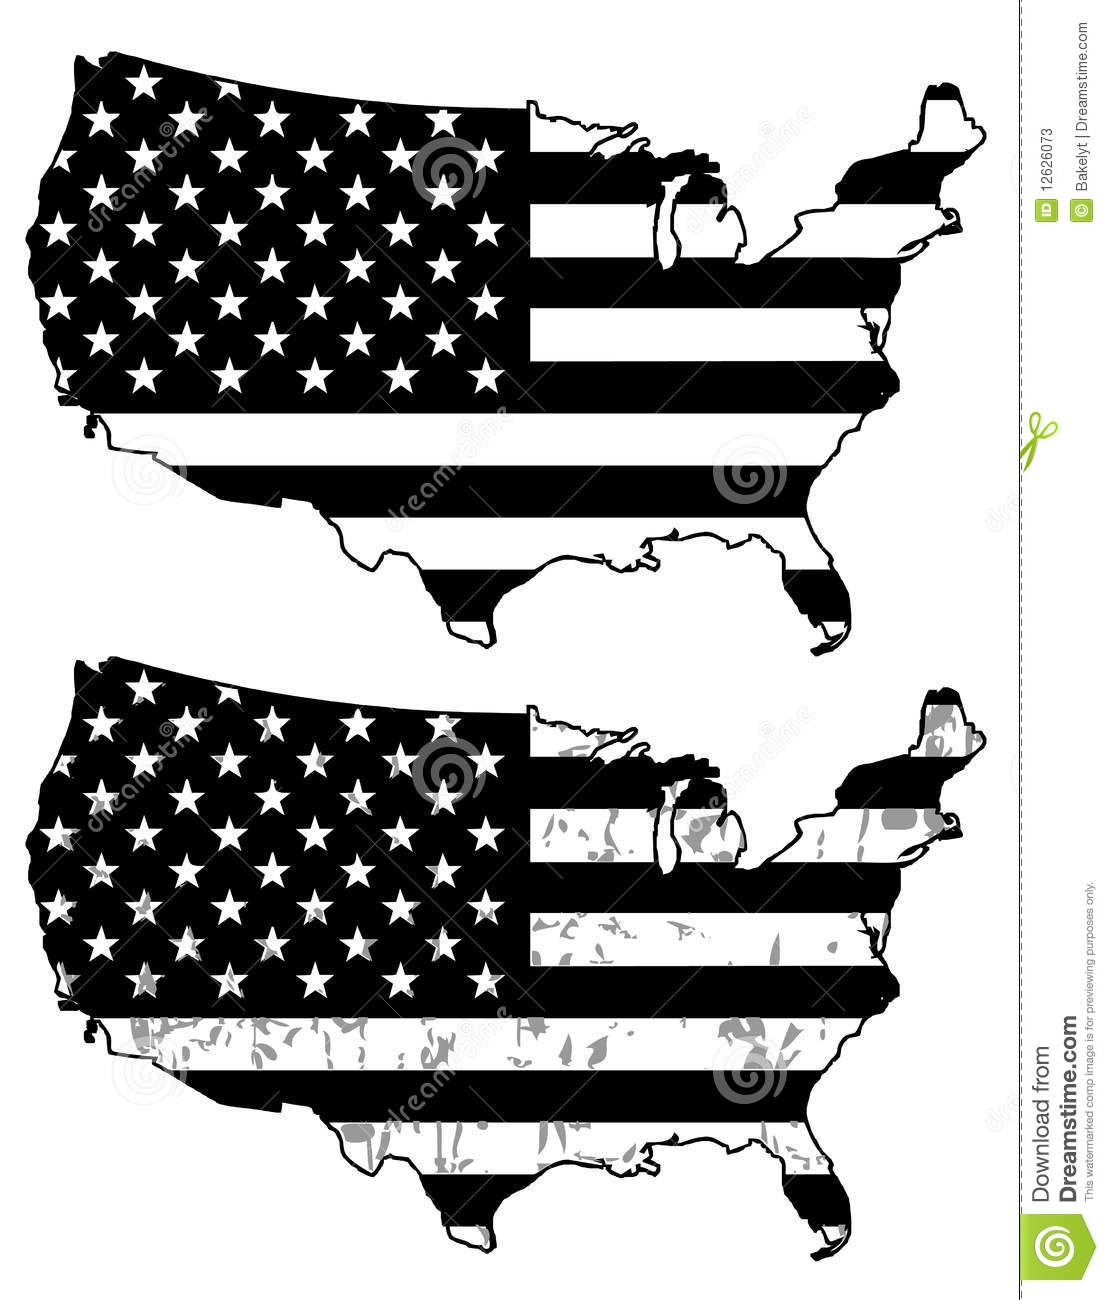 USA Black And White Flags Stock Photos - Image: 12626073